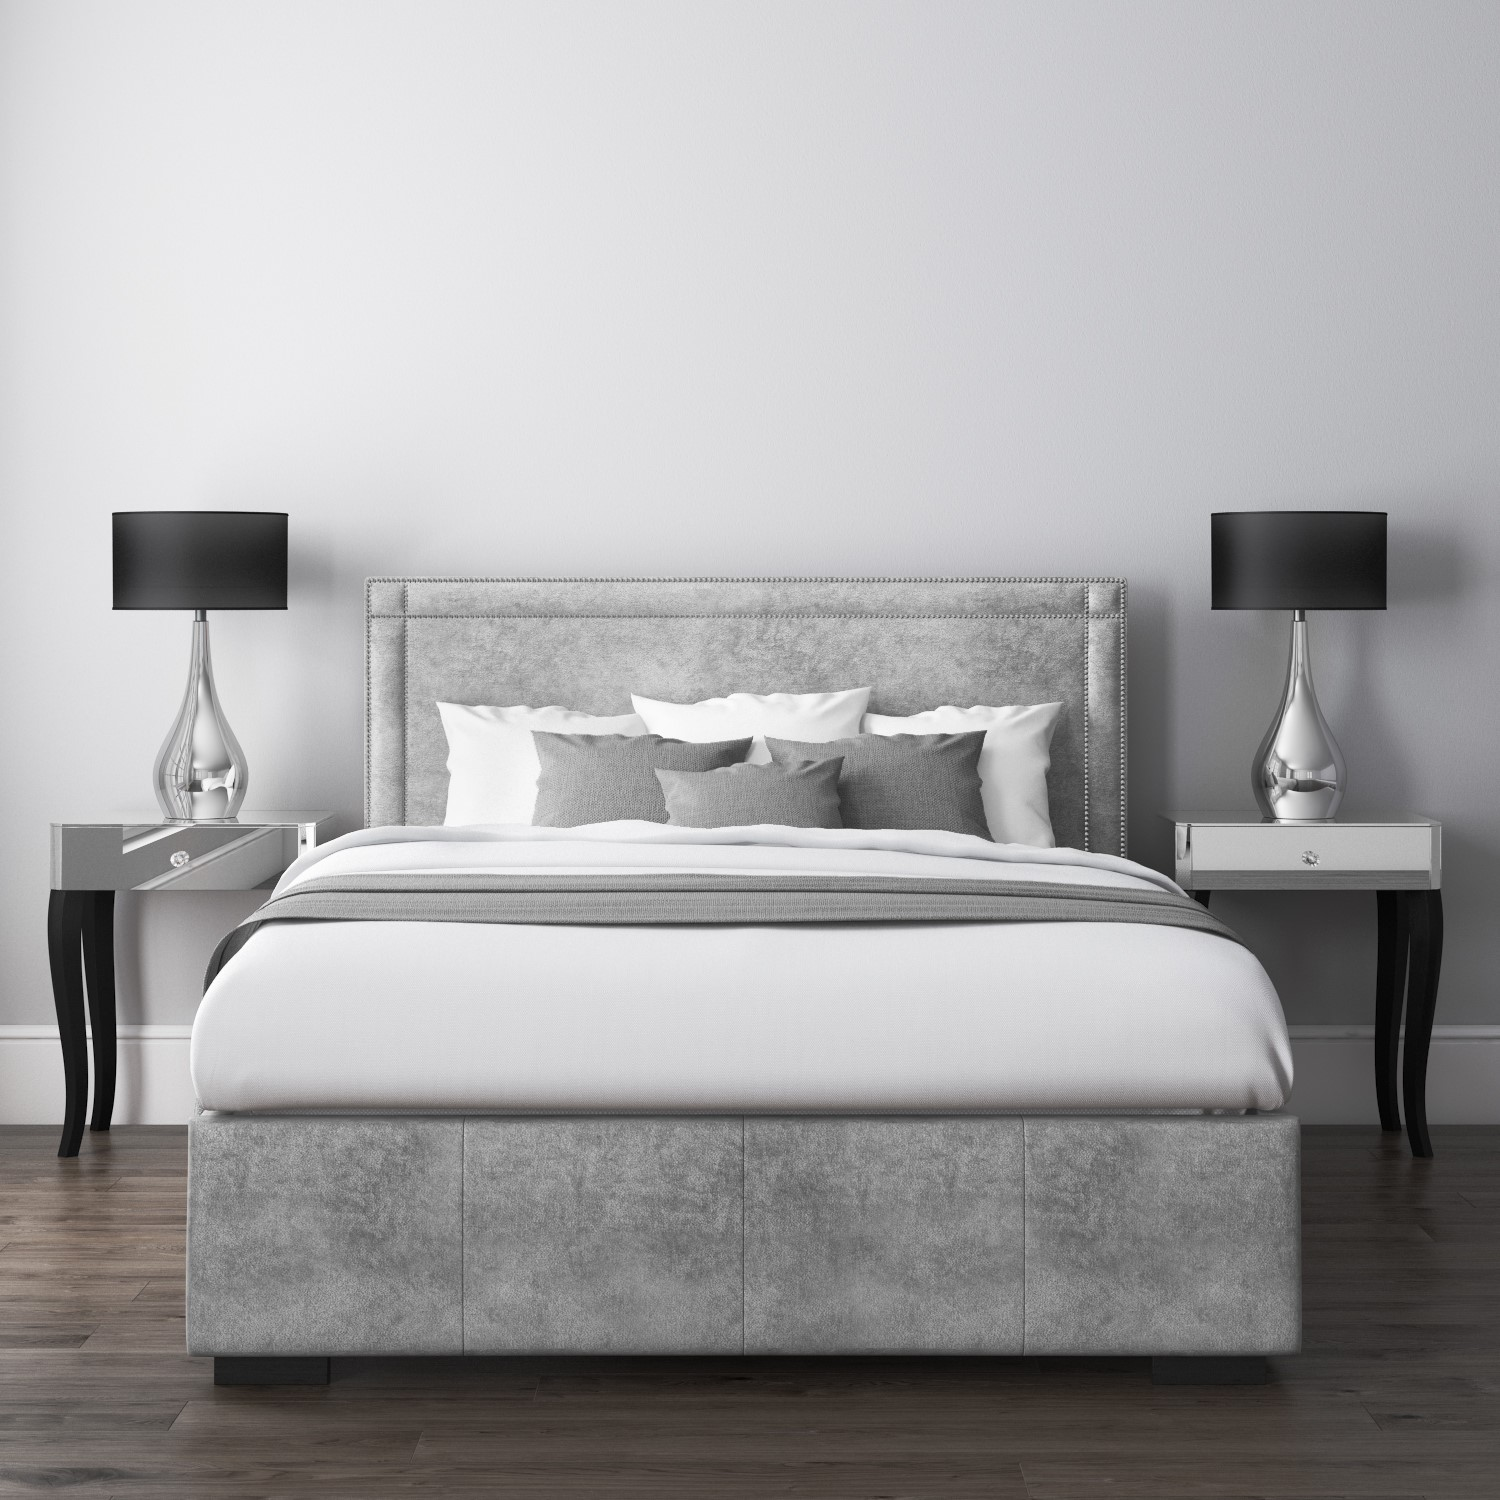 Incredible Safina King Size Ottoman Bed With Stud Detailing In Grey Velvet Creativecarmelina Interior Chair Design Creativecarmelinacom